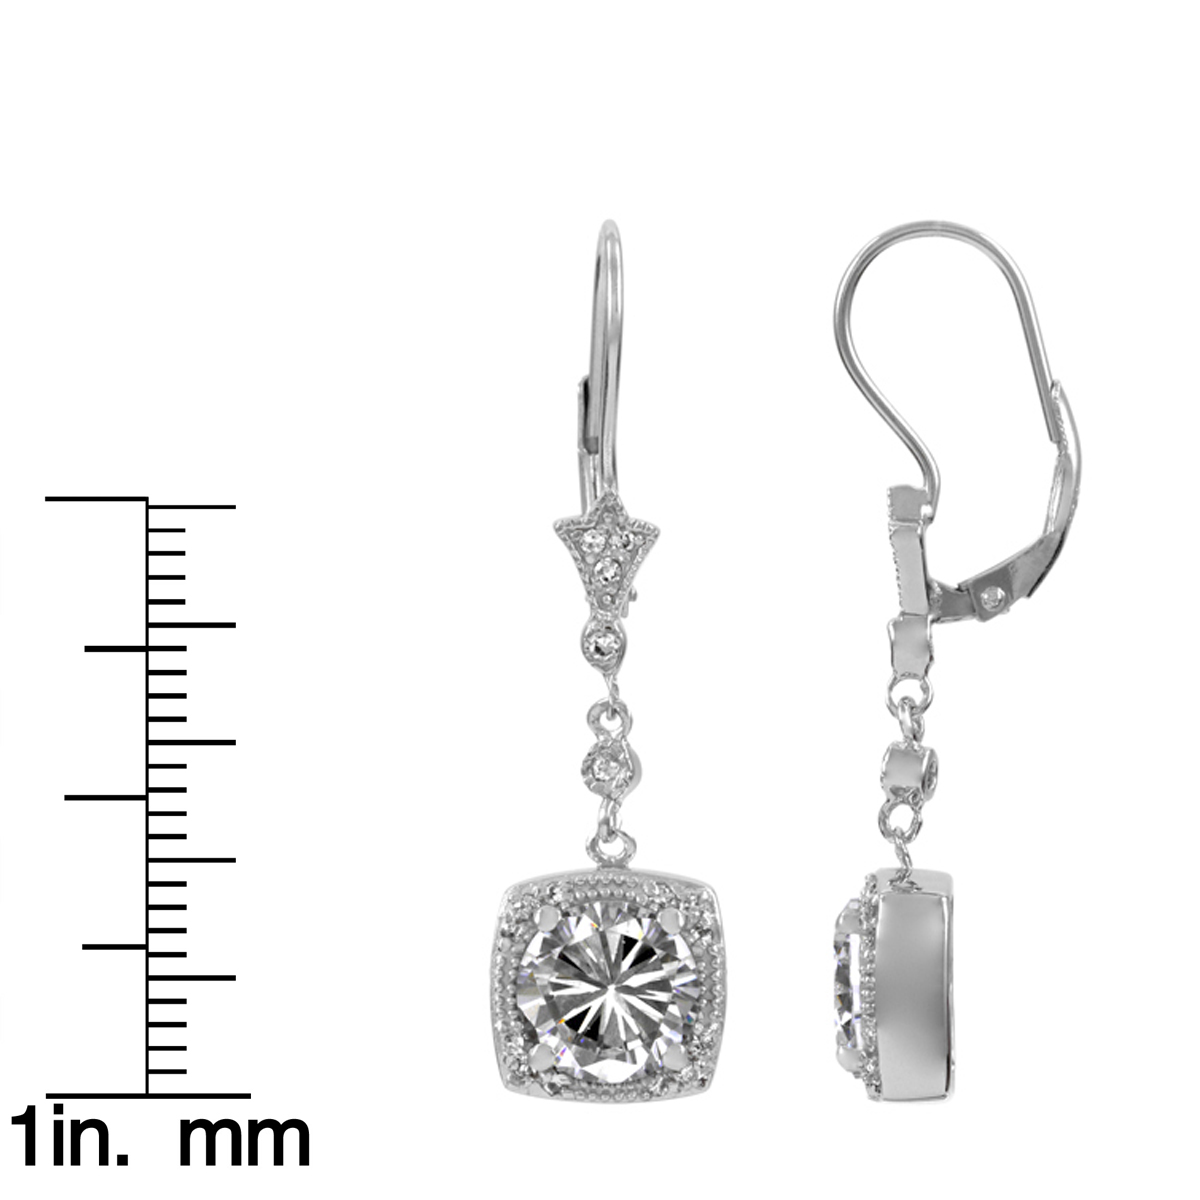 Margareta's Brilliant Cz Dangle Leverback Earrings